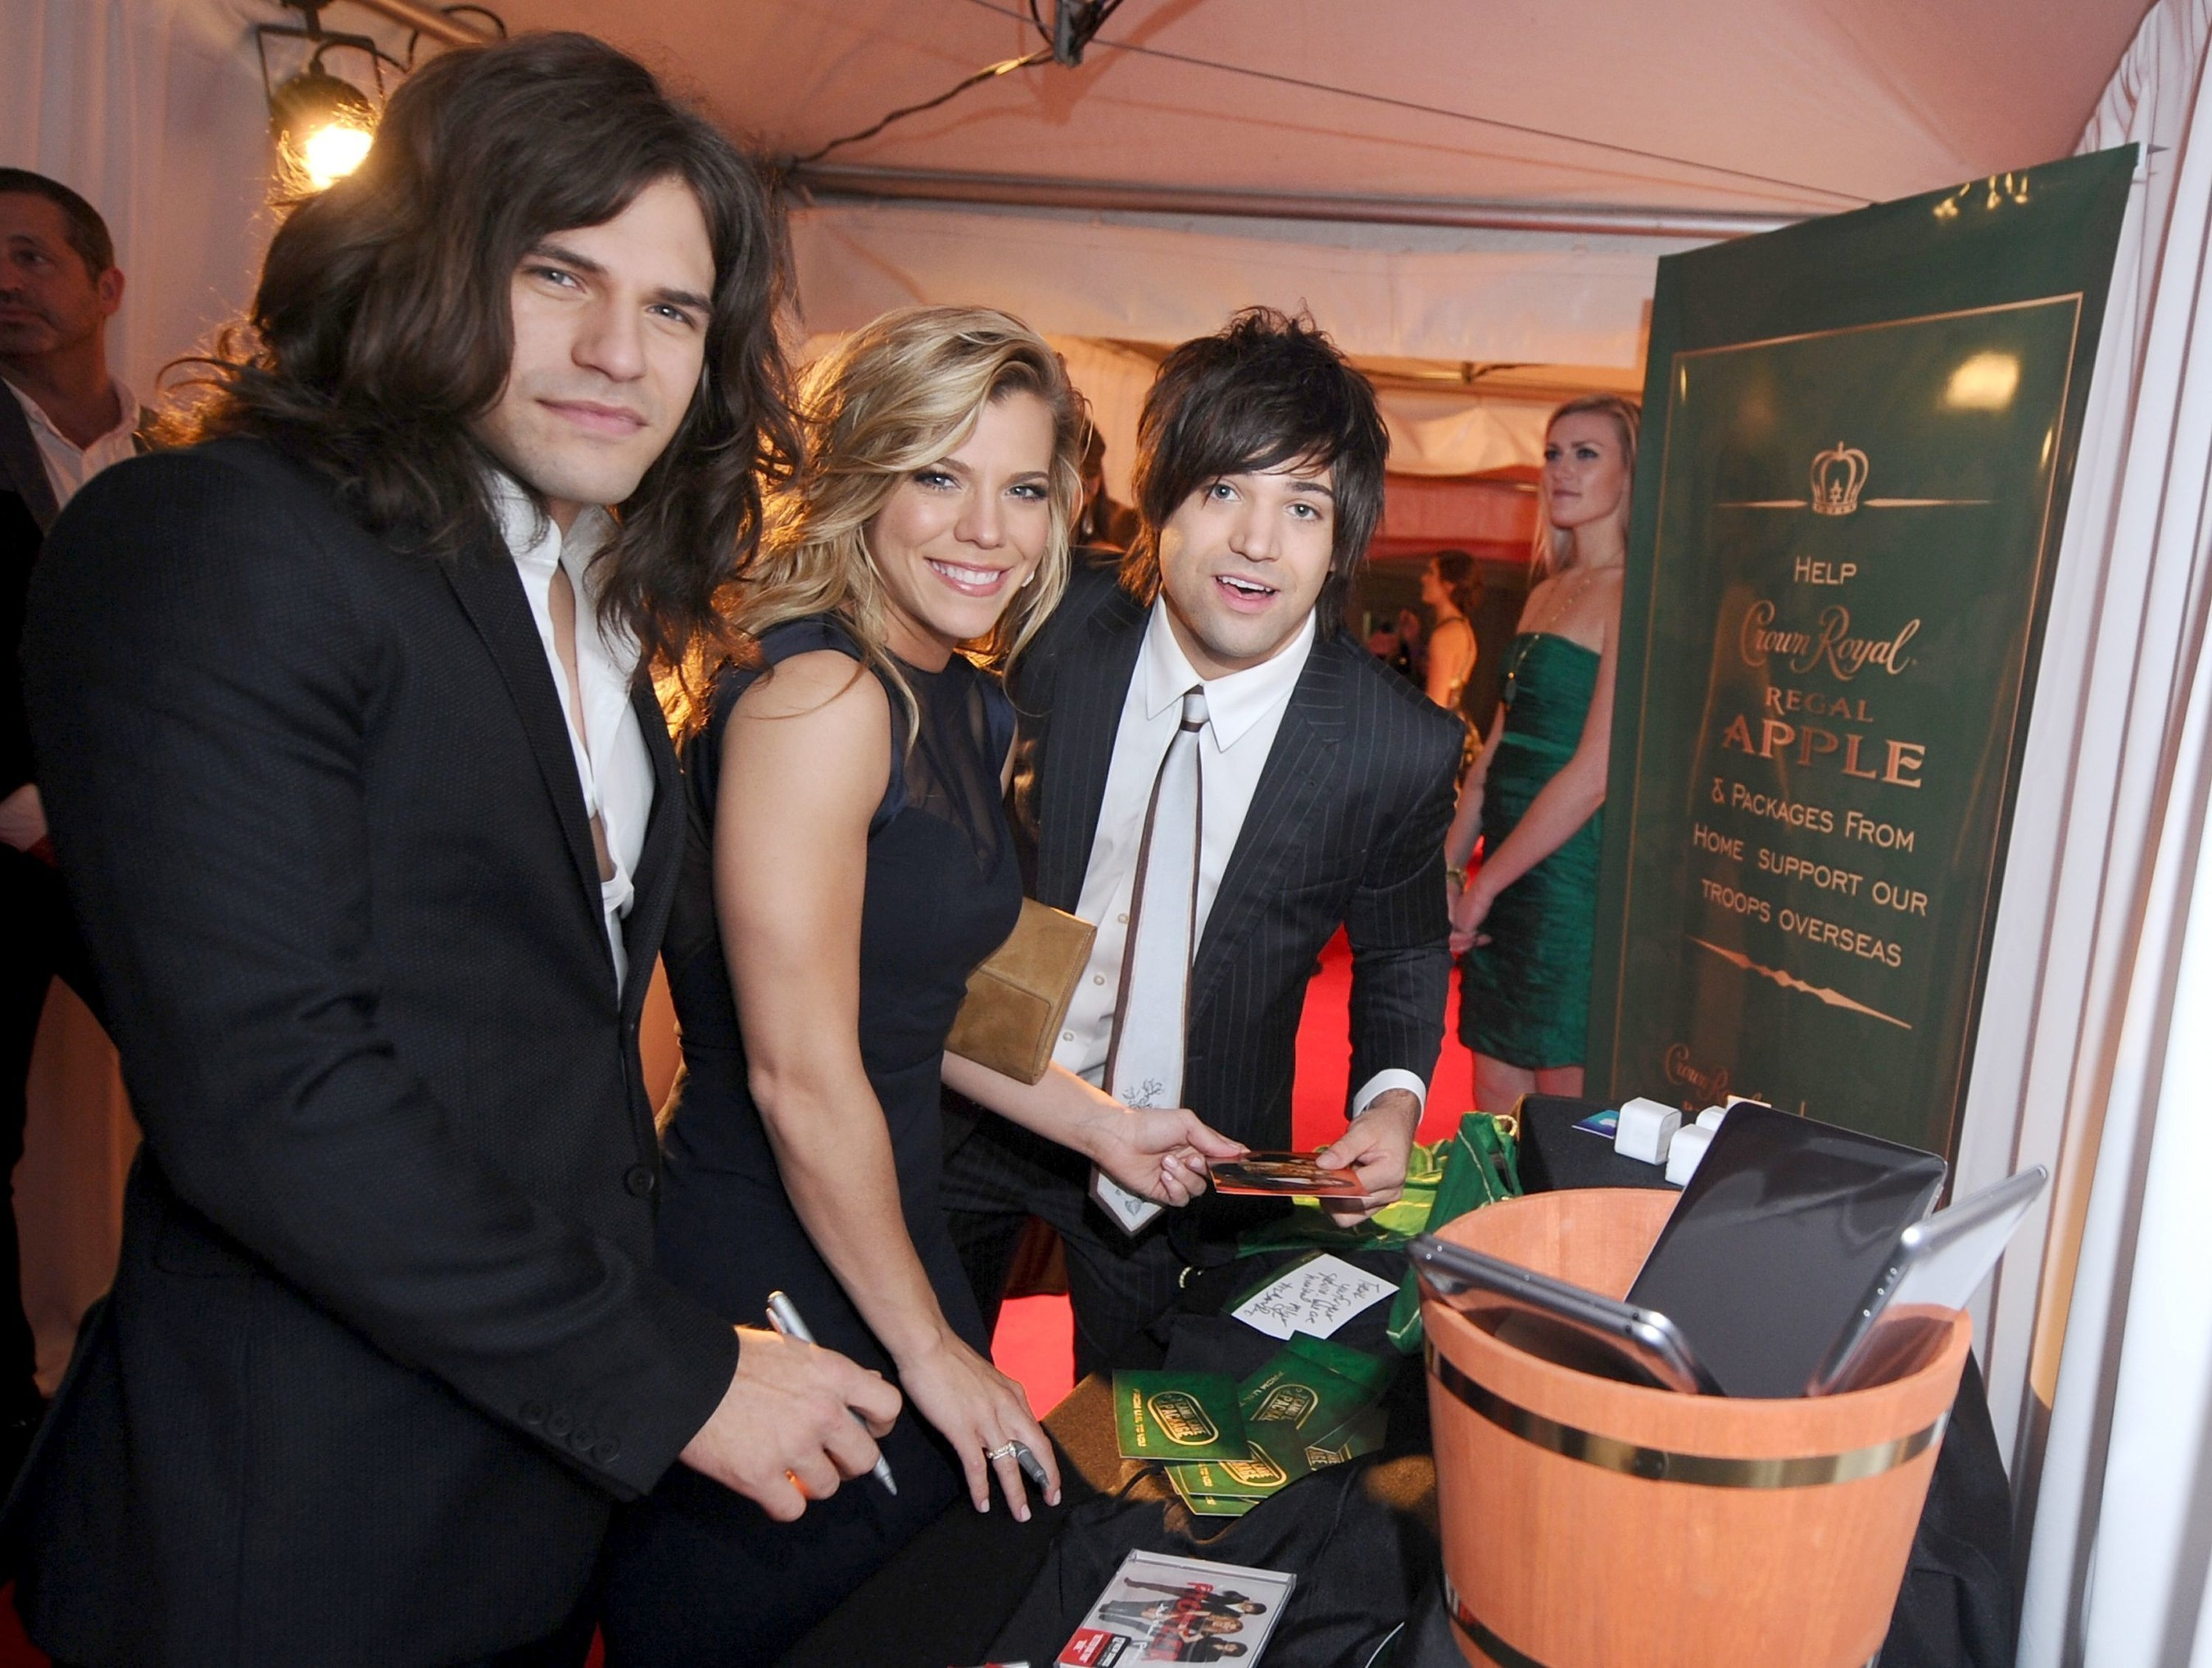 Reid Perry, Kimberly Perry, and Neil Perry of The Band Perry take a moment to pack a Crown Royal Regal Apple care package in effort to honor US troops overseas at the BLMG After Party on November 5, 2014 in Nashville, Tennessee. (Photo by Ilya S. Savenok/Getty Images for Crown Royal)